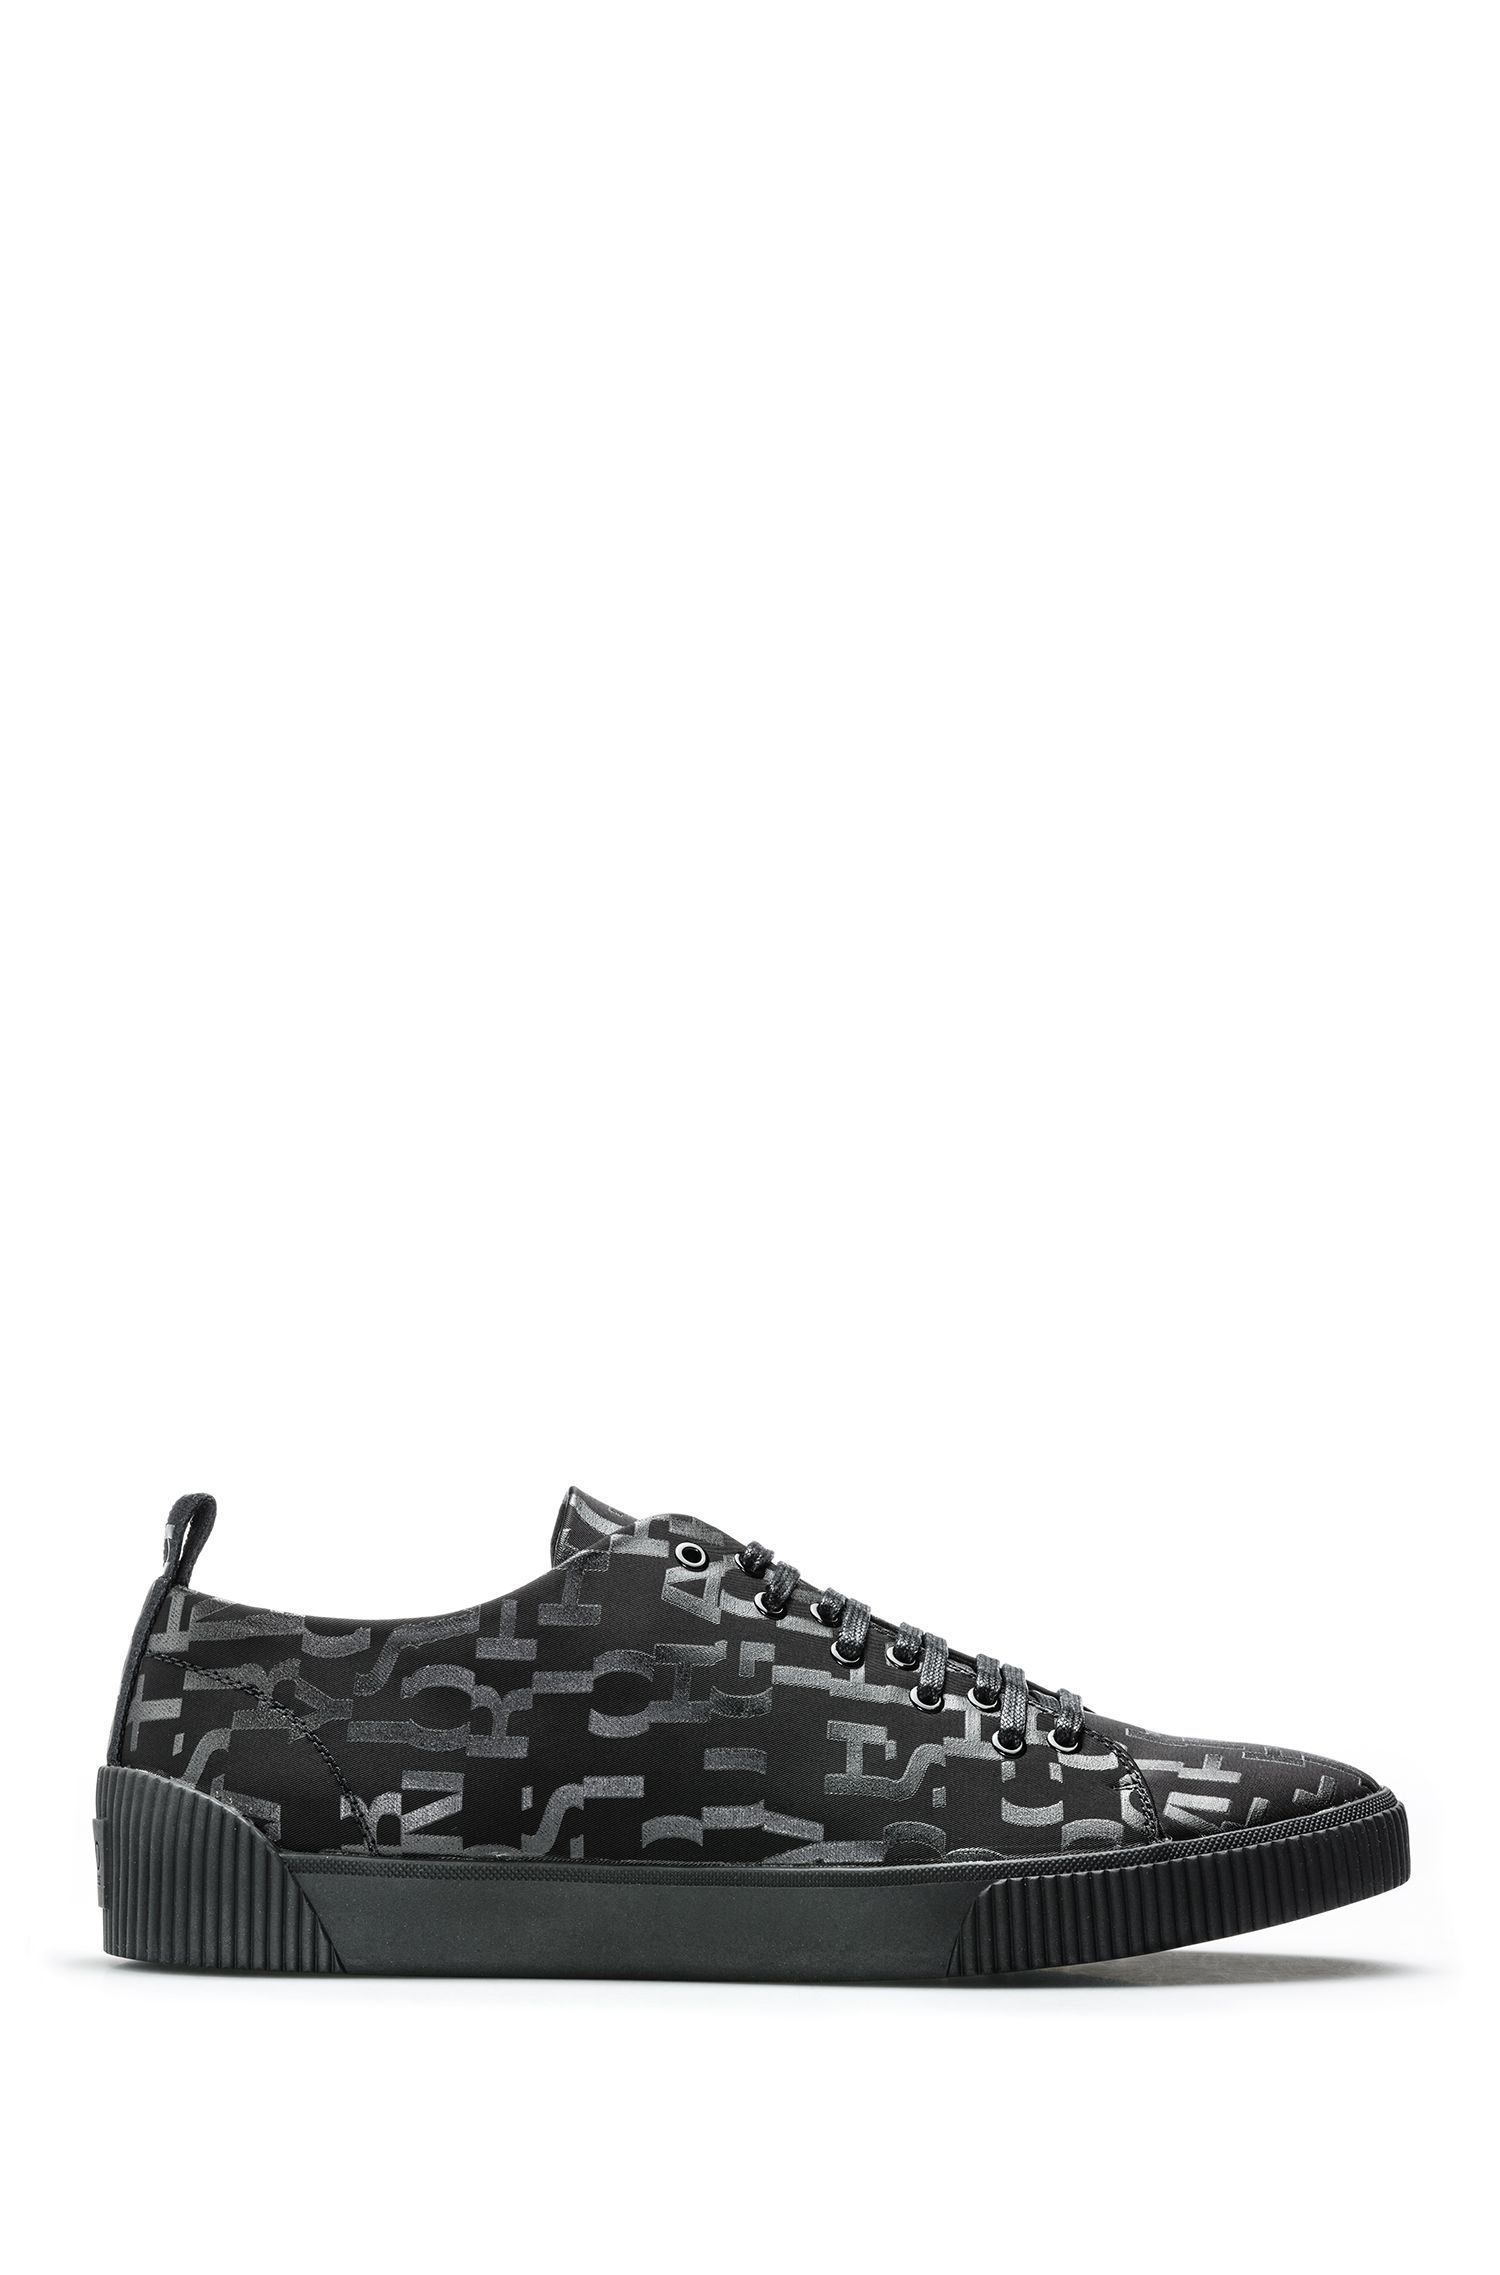 Lace-up sneakers with seasonal-print uppers